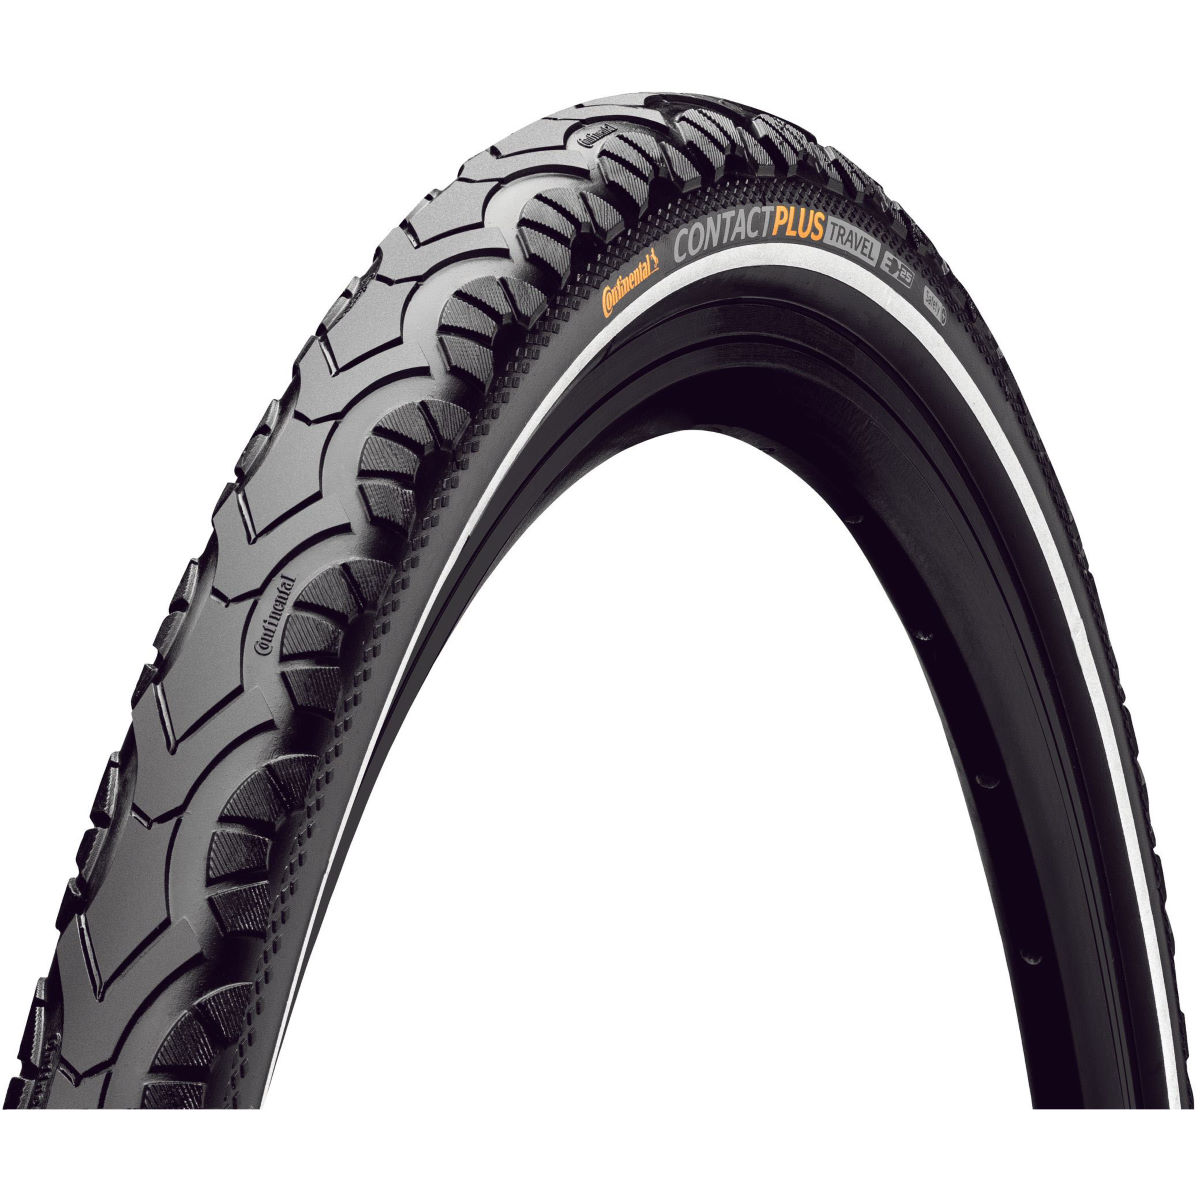 Continental Continental Contact Plus Travel Tyre   Tyres